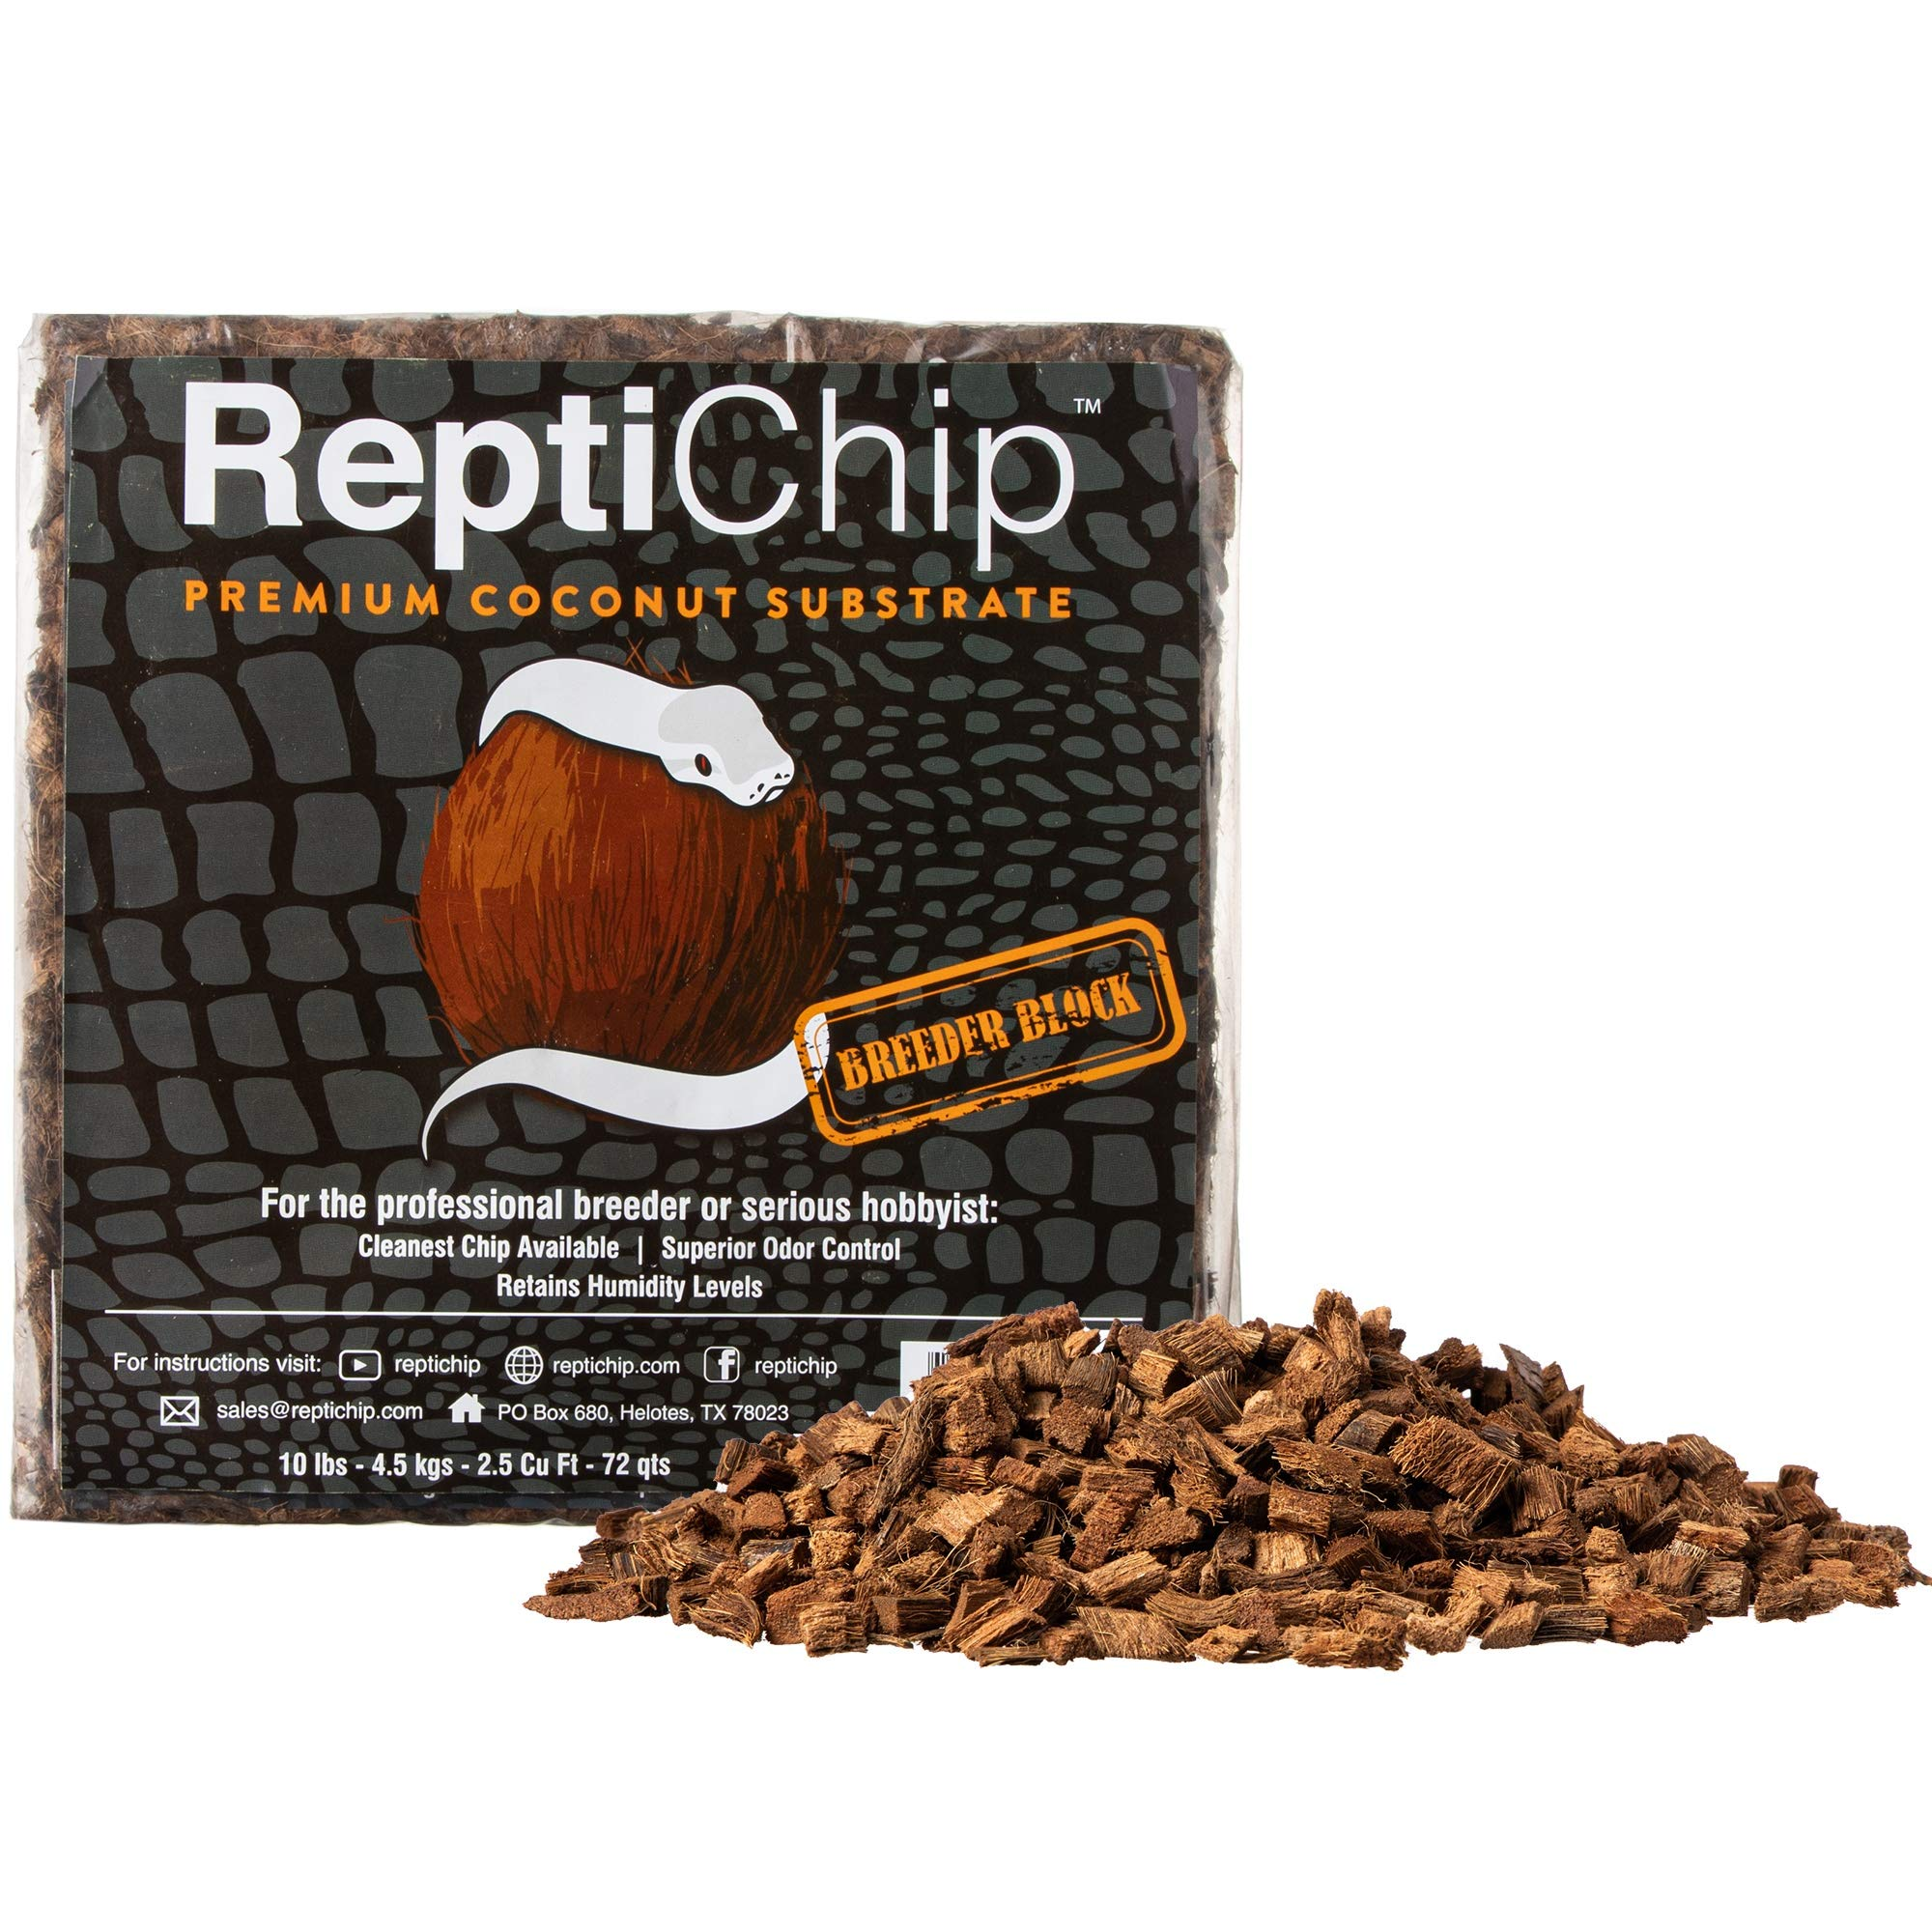 ReptiChip Premium Coconut Reptile Substrate, 72 Quarts, Perfect for Pythons, Boas, Lizards, and Amphibians by ReptiChip Premium Coconut Substrate